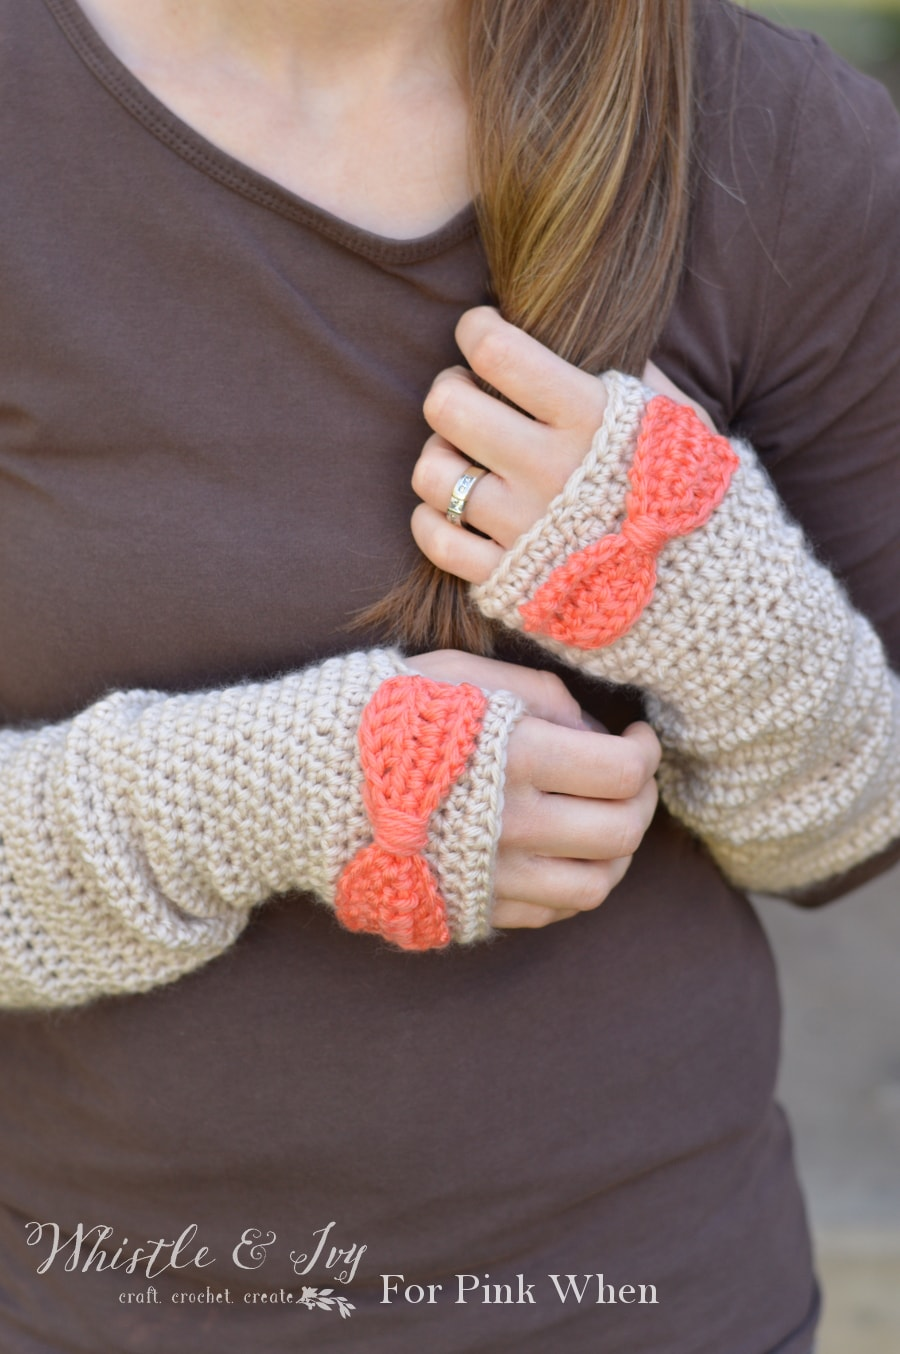 Dainty Bow Crochet Arm Warmers | PinkWhen